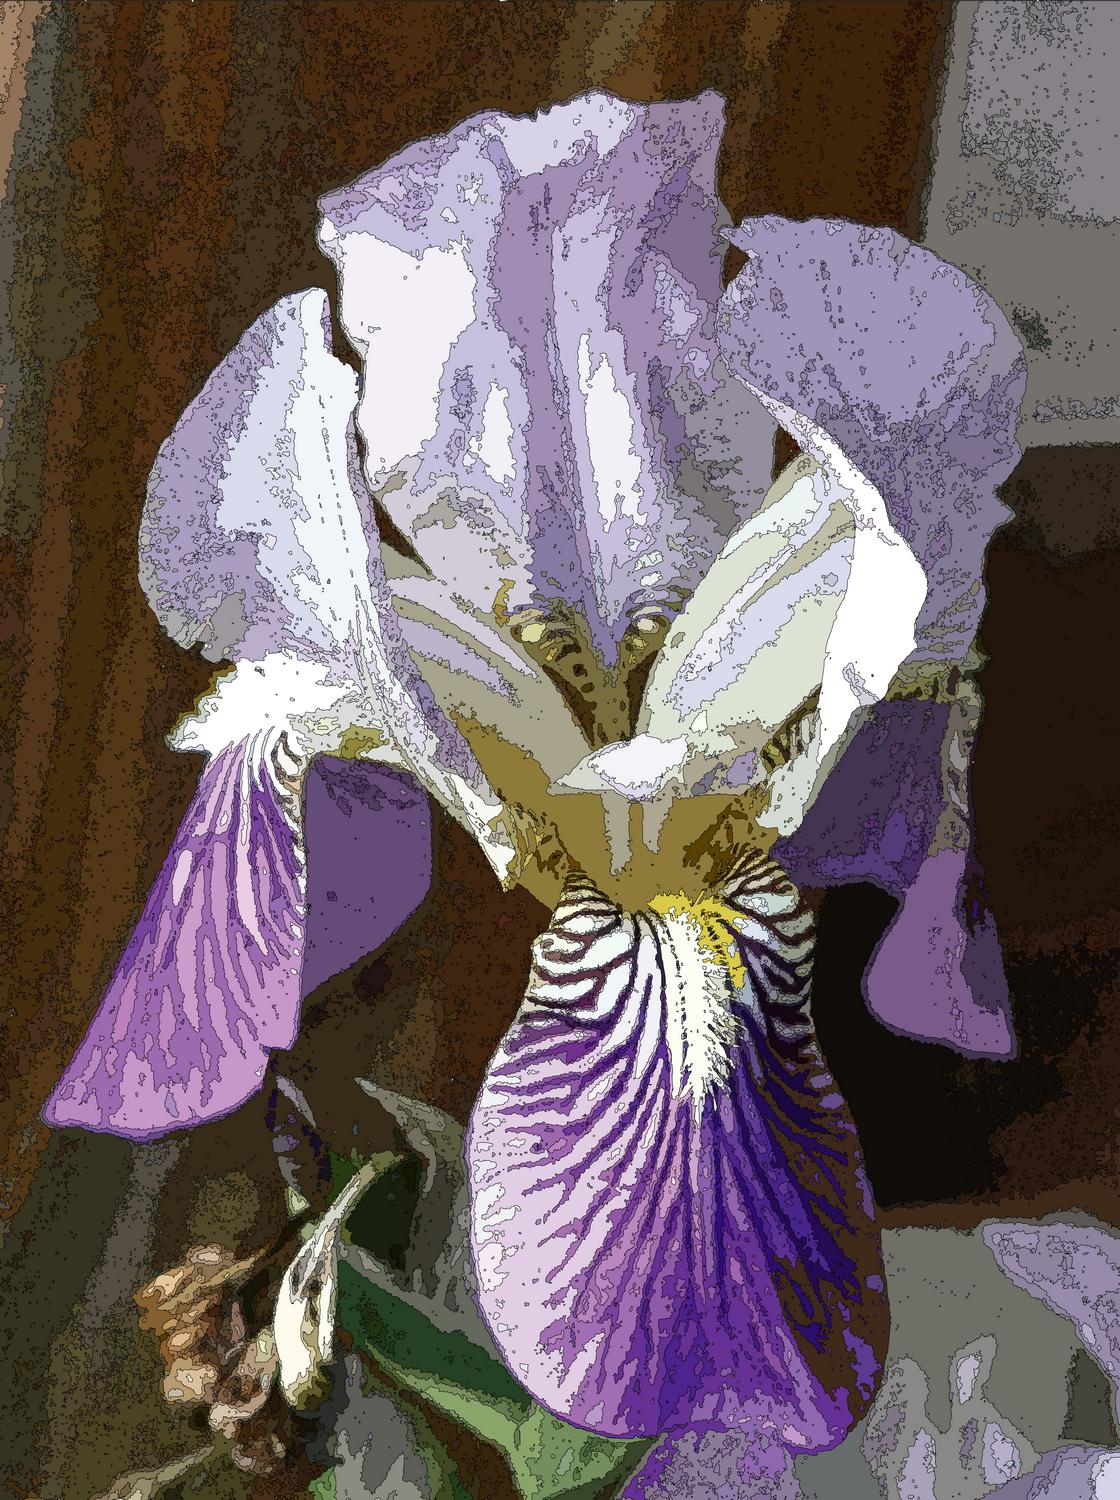 white and purple iris style divisionism - Iris with fine lines</Center><p></p> - Techno-Impressionist Museum - Techno-Impressionism - art - beautiful - photo photography picture - by Tony Karp